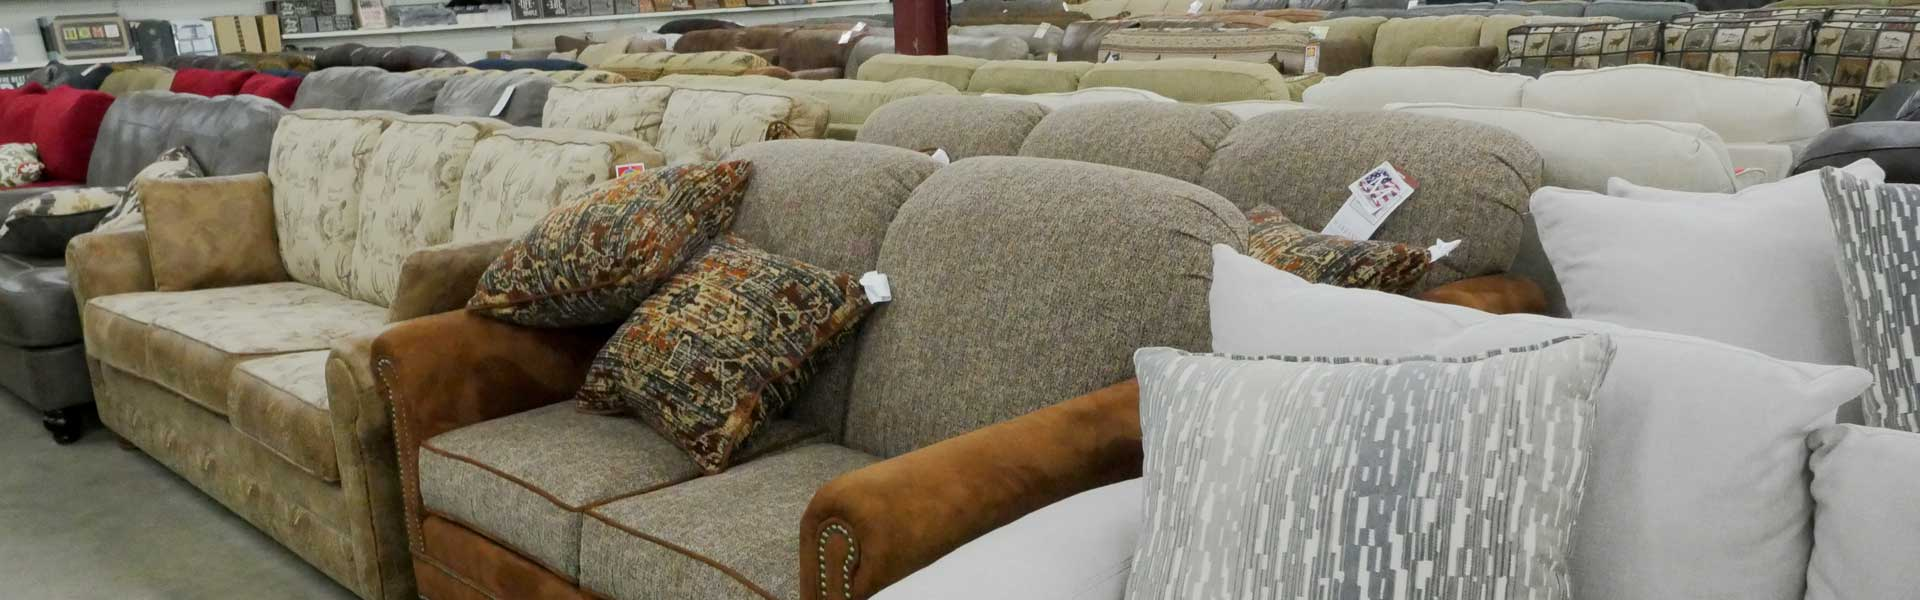 Couches at milaca unclaimed freight